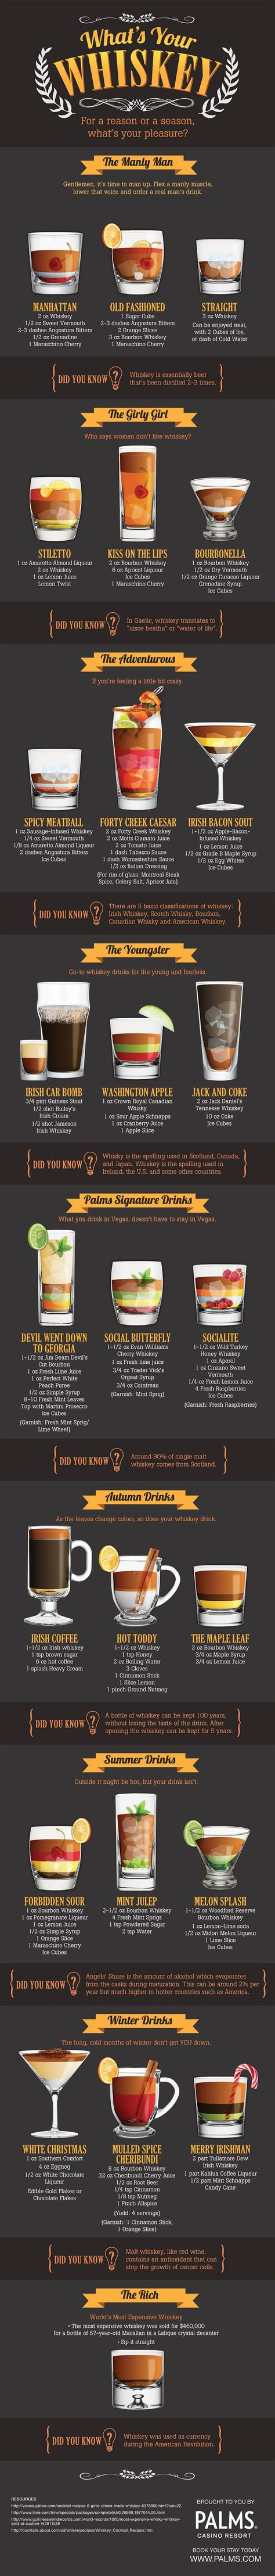 What's Your Whiskey? #infographic